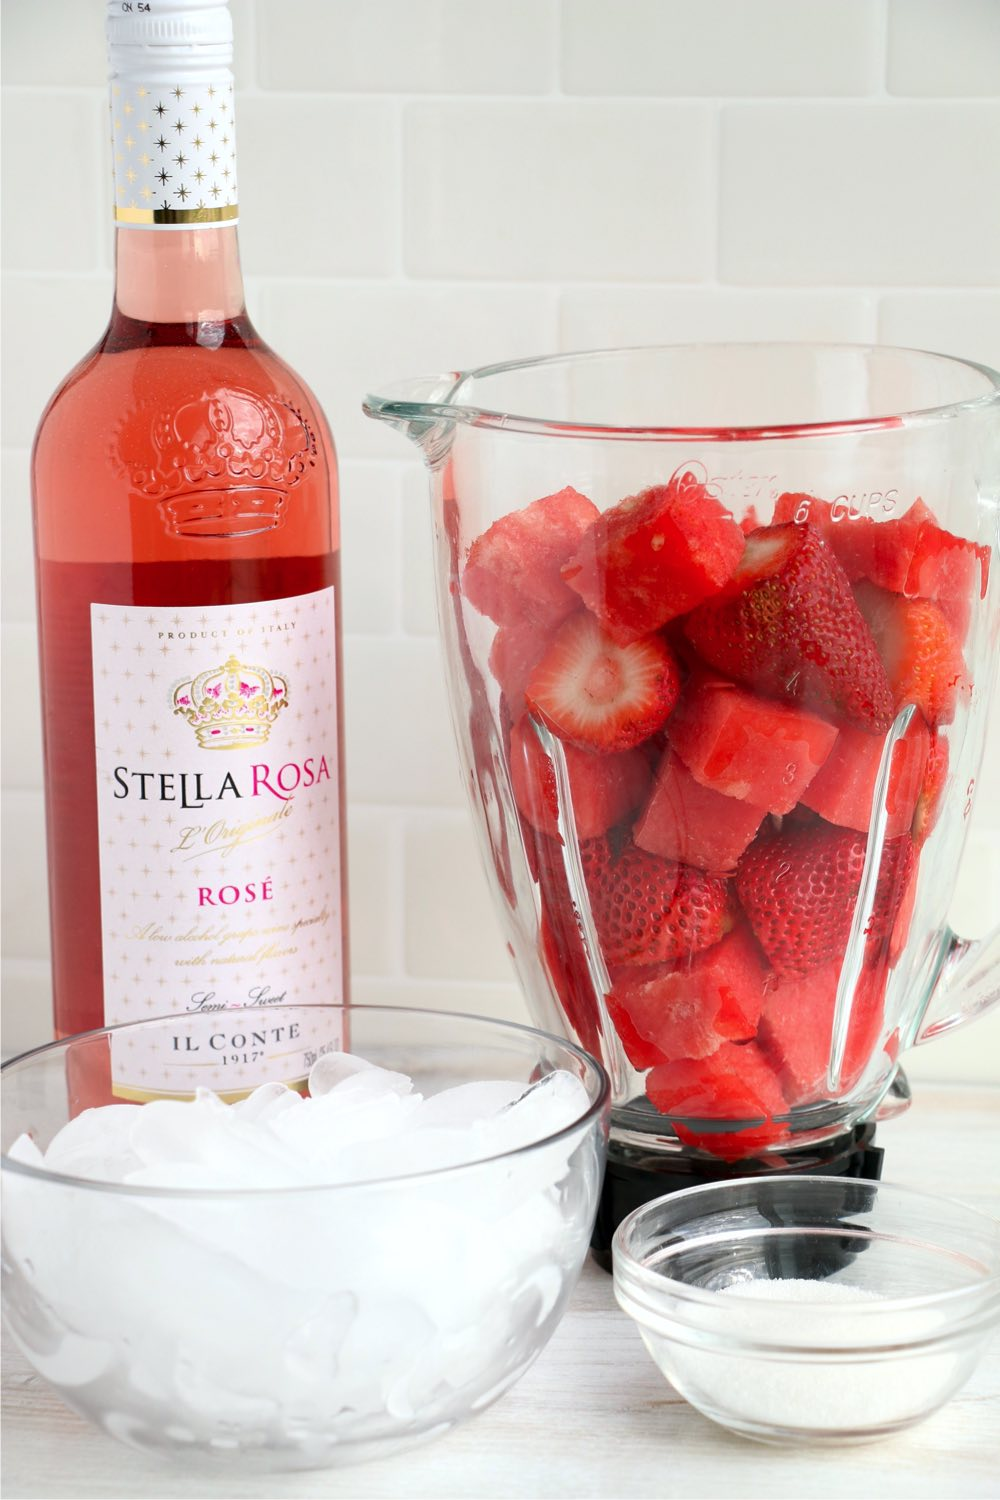 Ingredients for a strawberry and watermelon frose